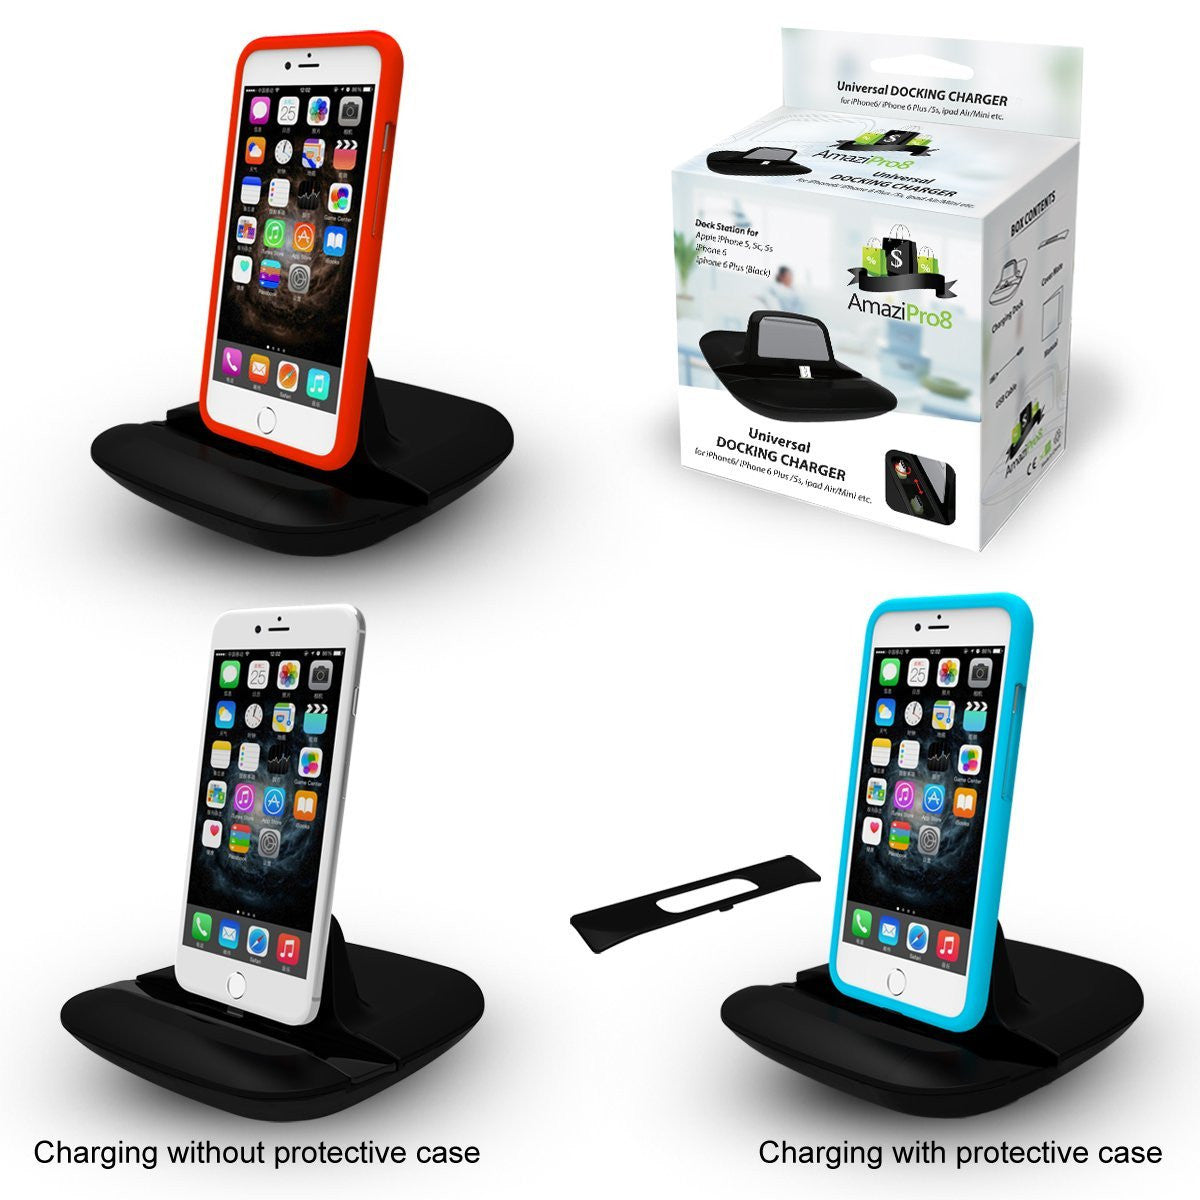 iPhone Charger Docking Station + Cable + Case-Mate, Apple iPhone 6 Plus 6 5 5S 5C iPad Air/mini etc. - AmaziPro8